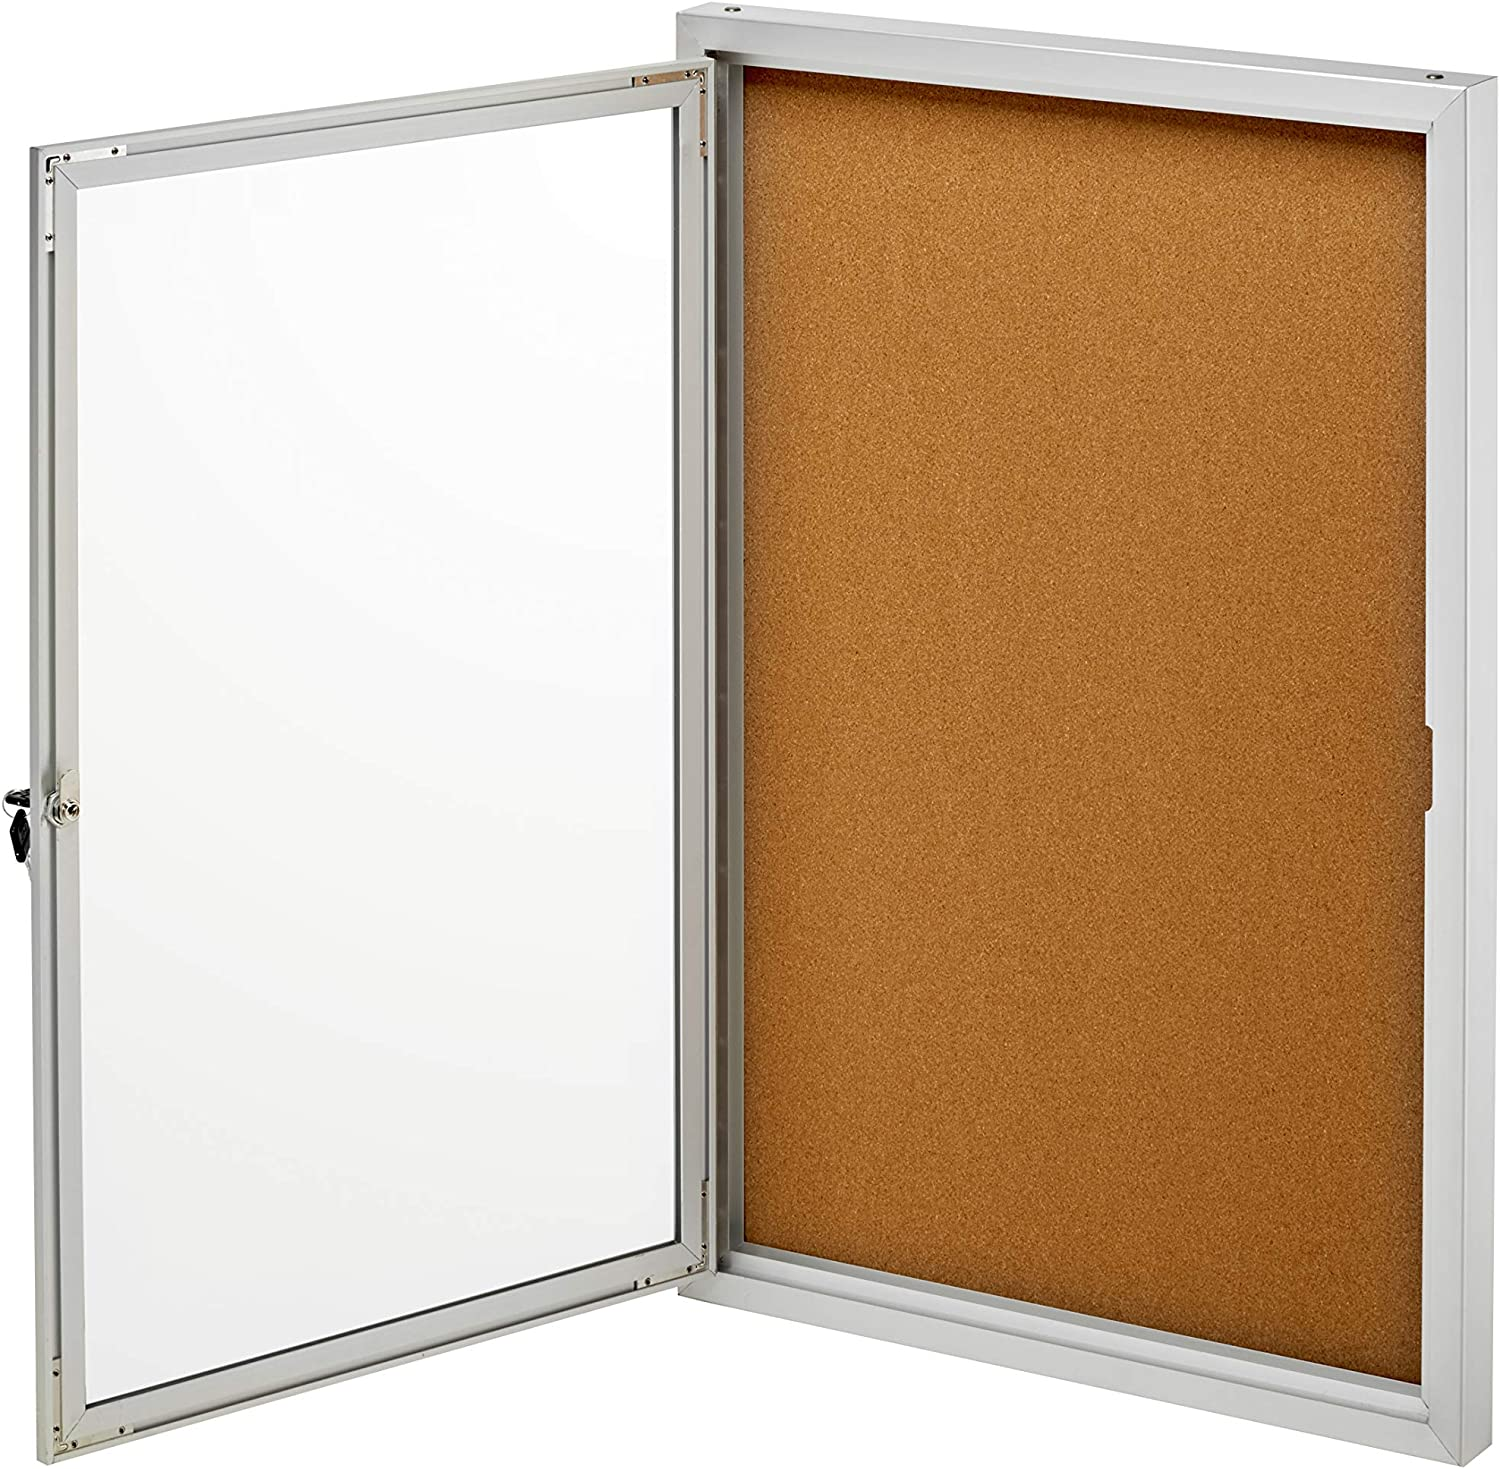 Adiroffice Enclosed Bulletin Boards 24 X36 W Key Security Innovative Feature Secures Important Documents Silver Cork Amazon Co Uk Office Products